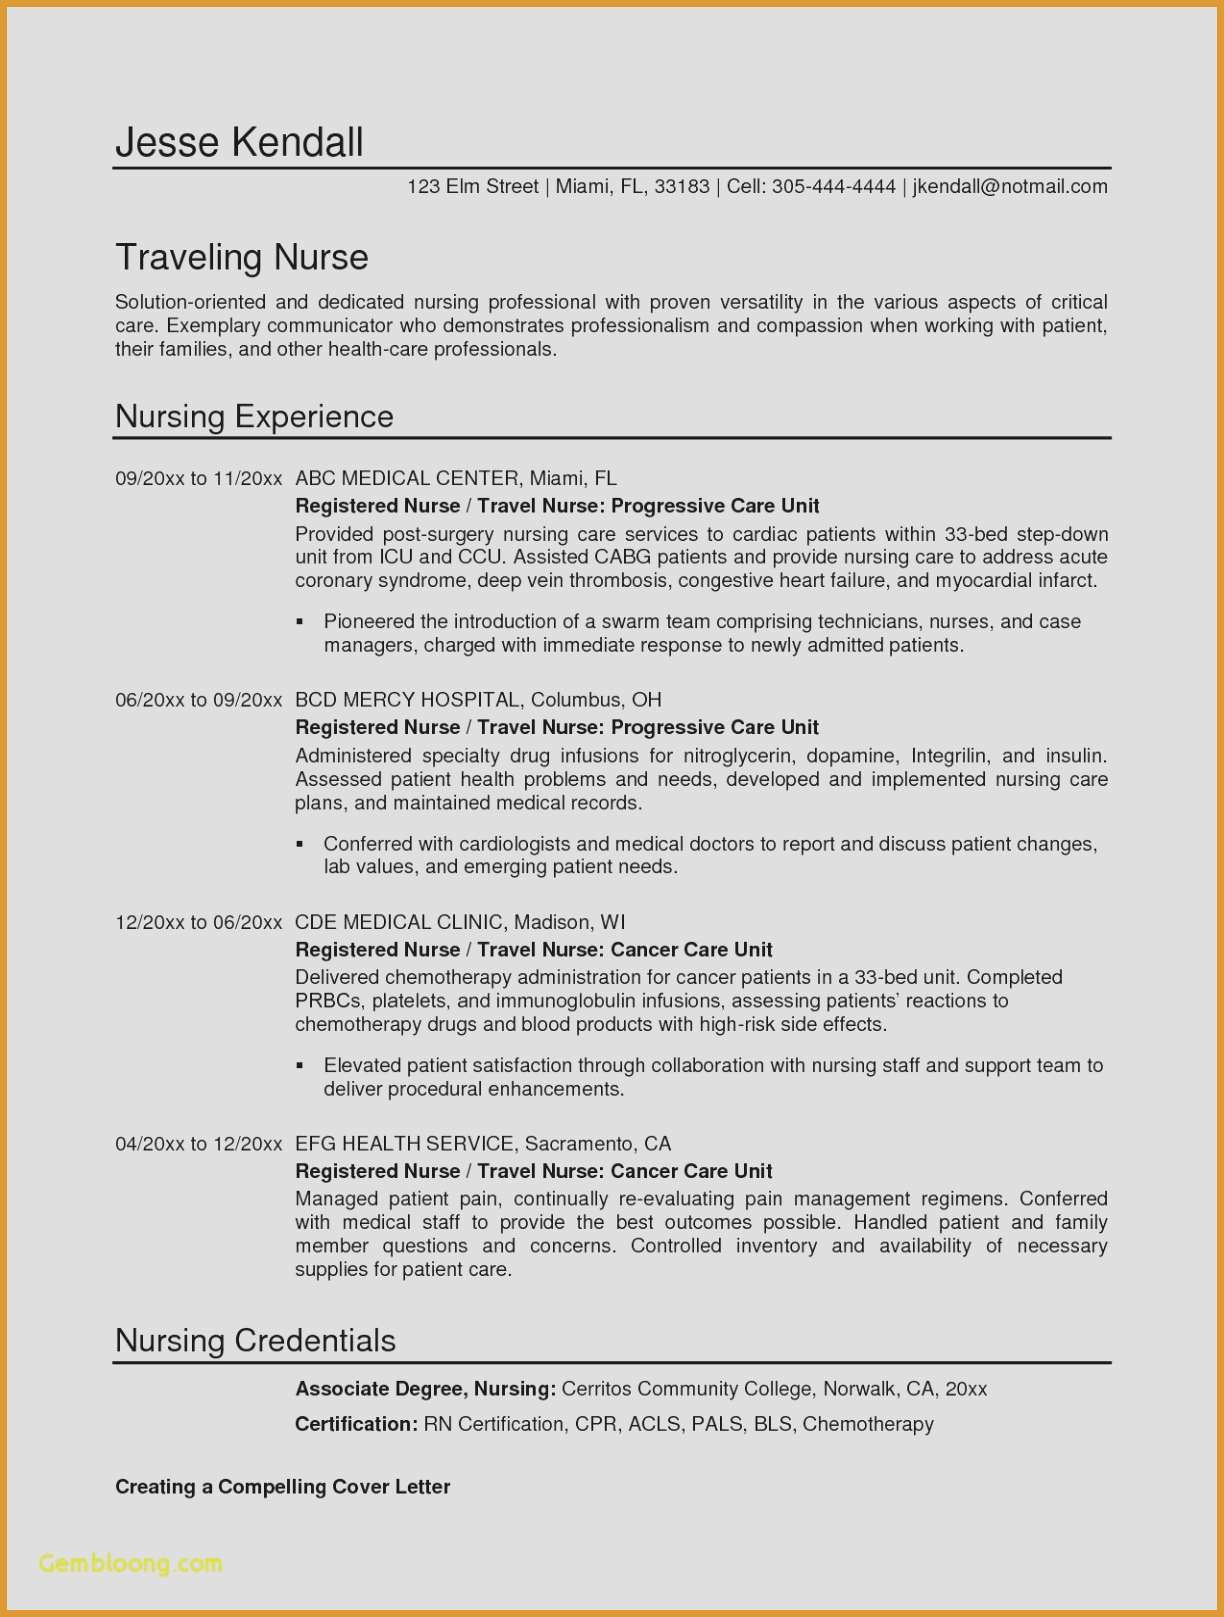 Travel Nurse Resume Template - Letter Collaboration Template Examples